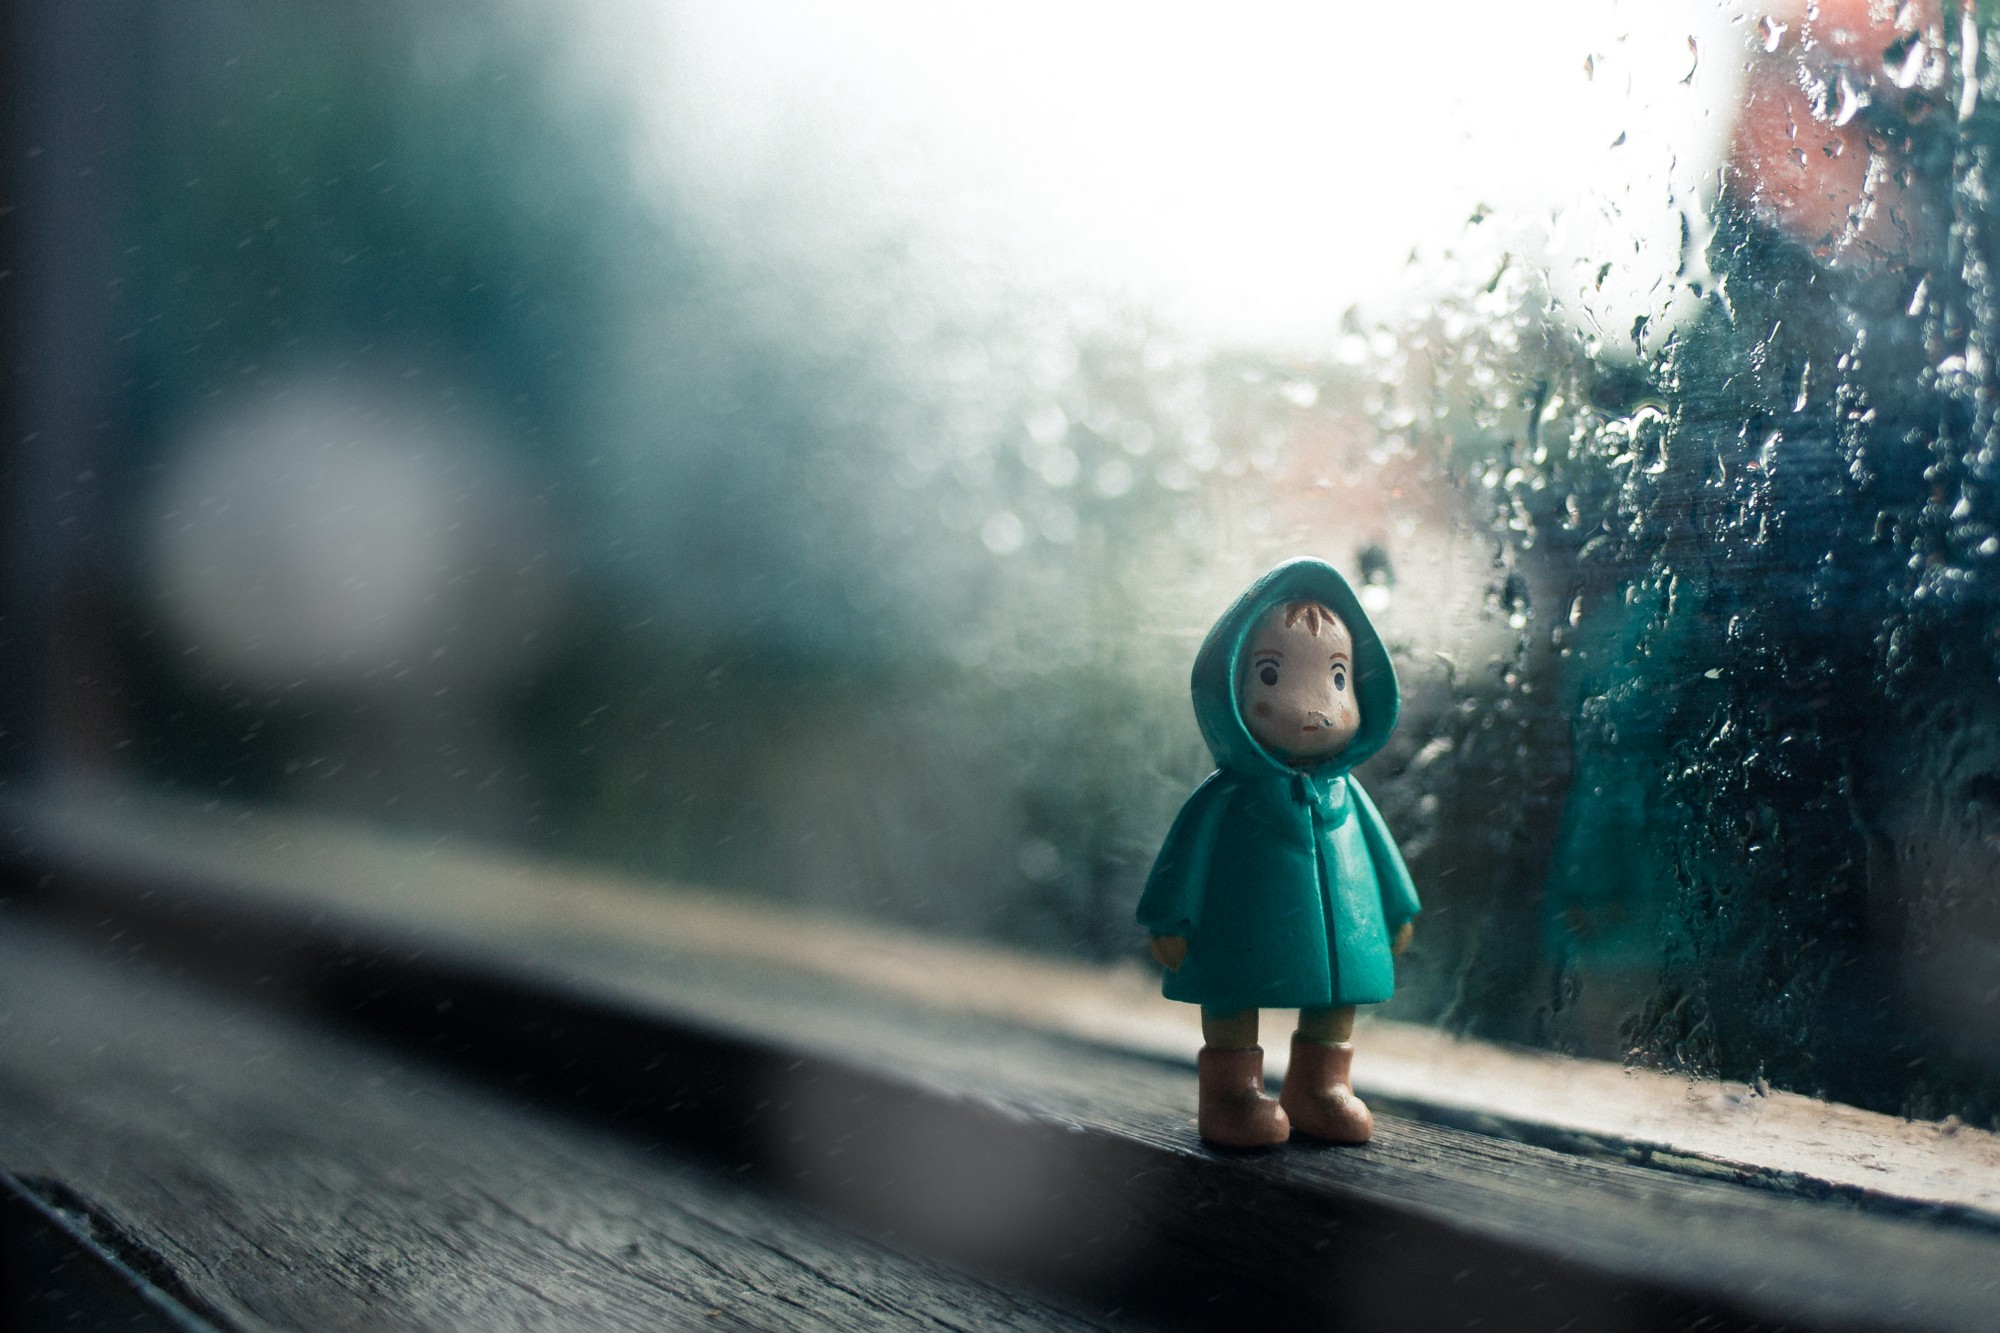 A small frowning toy in a rain jacket stands inside next to a rain soaked window. Trapped inside.